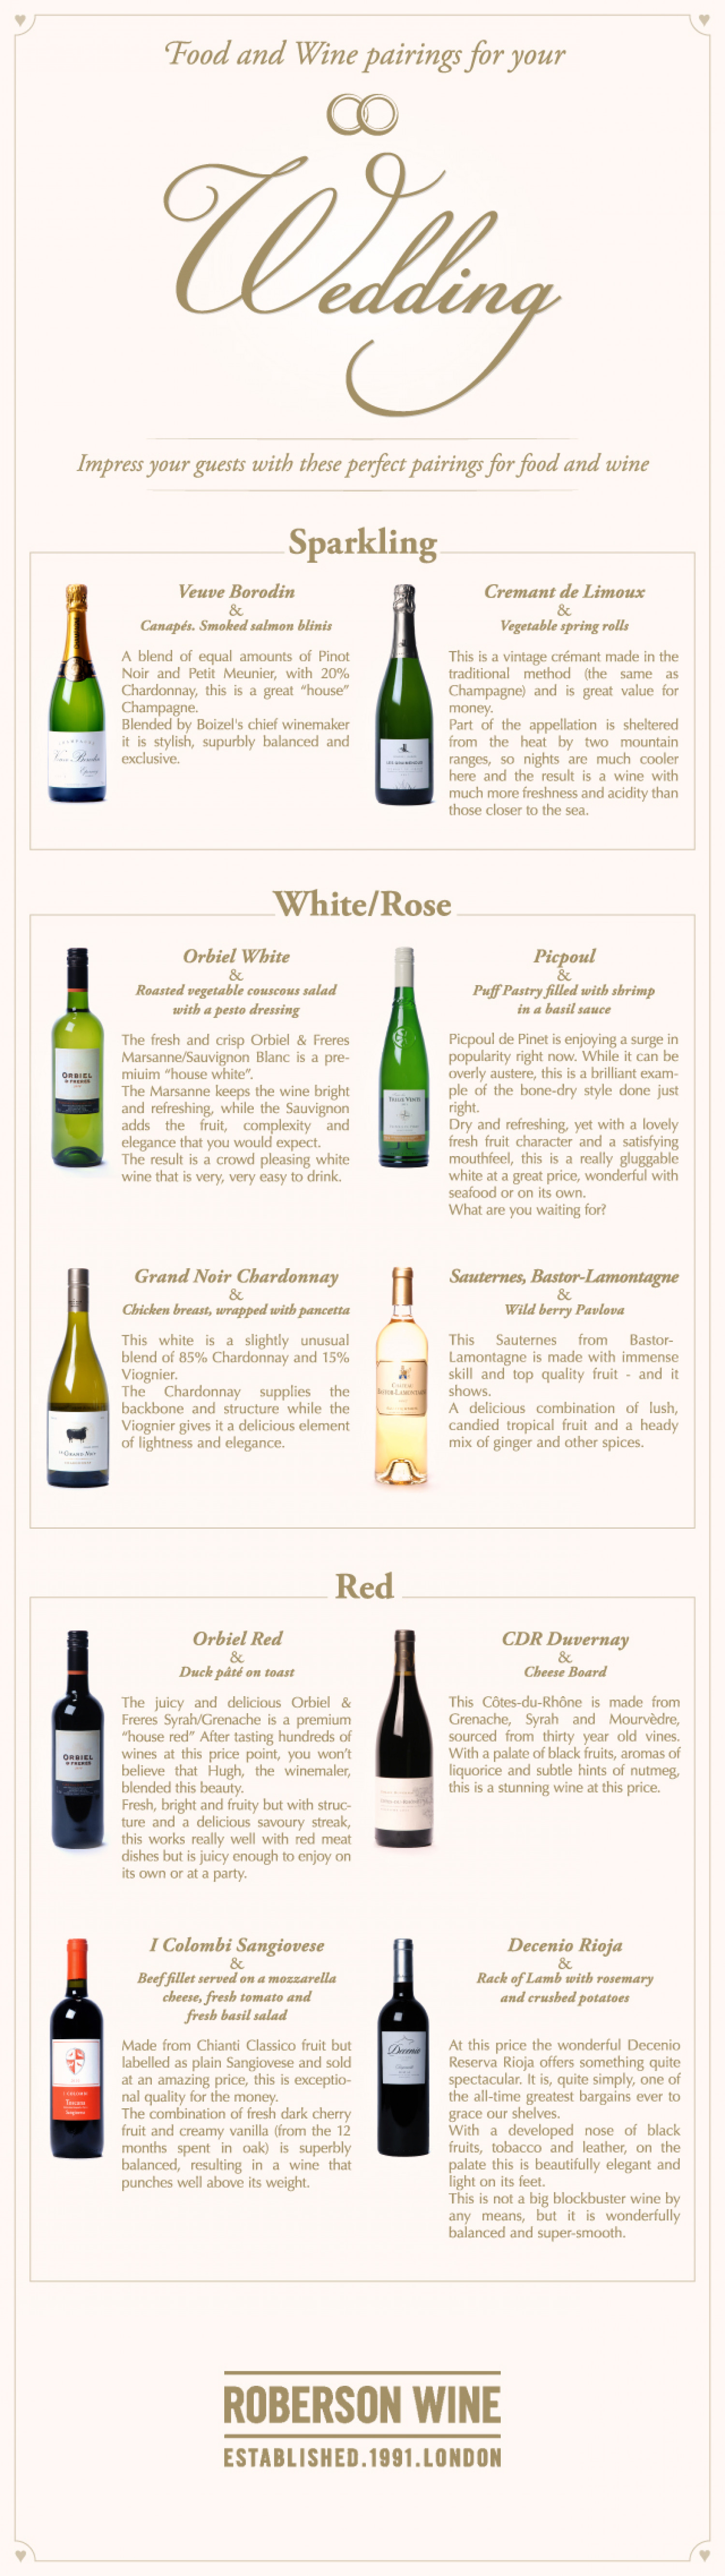 Food and Wine Pairings for your Wedding Infographic